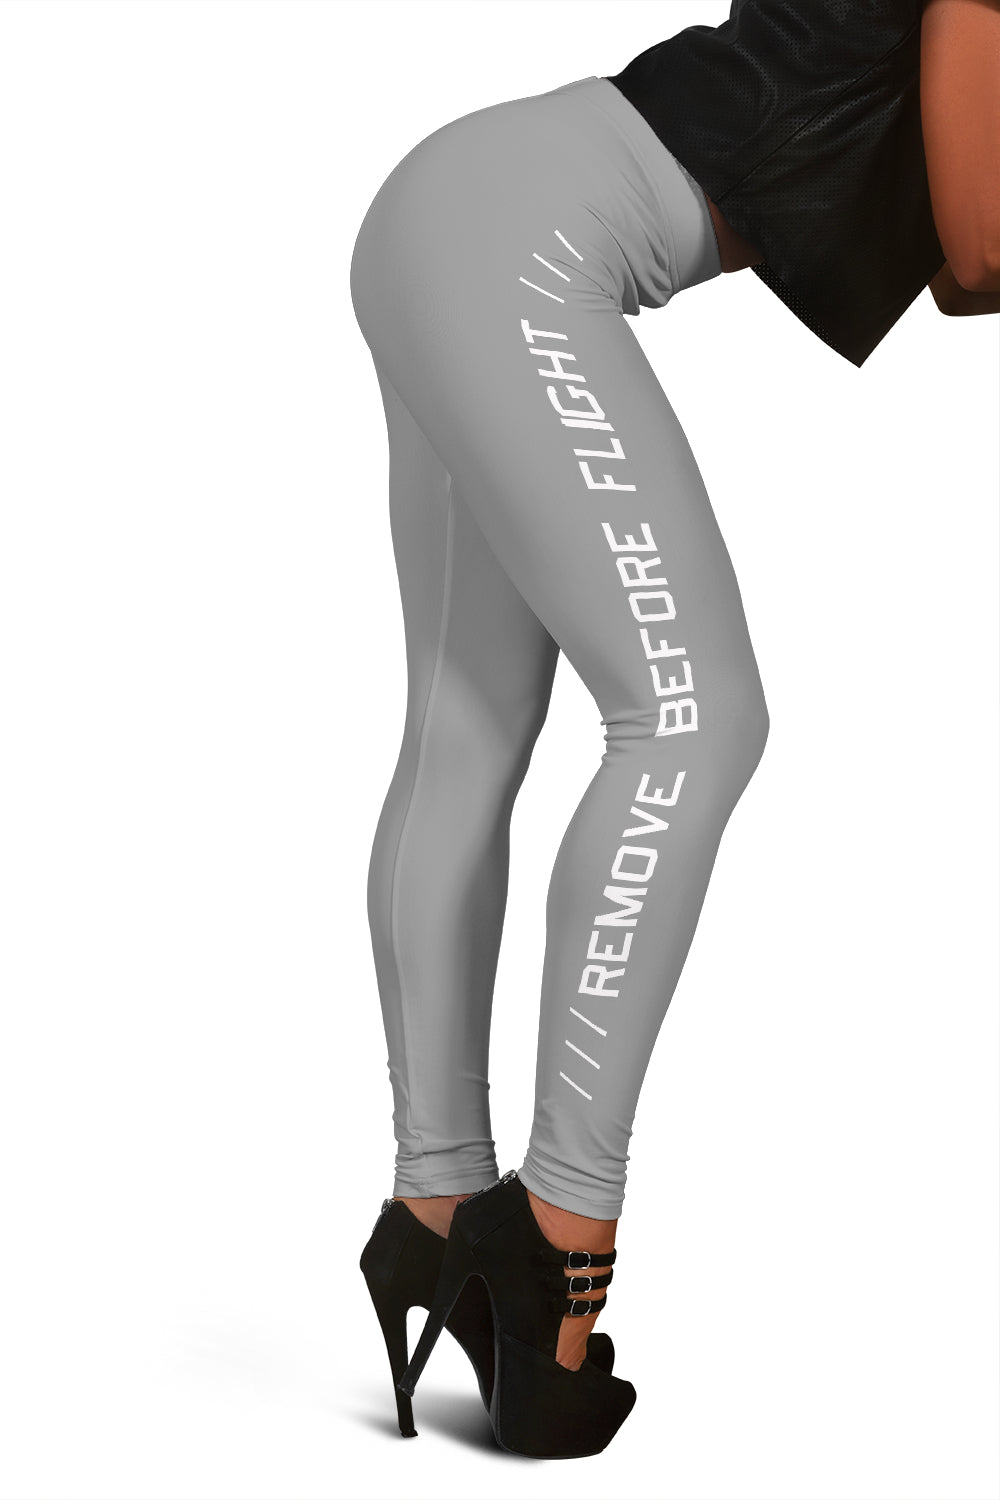 Remove Before Flight Leggings - Light Grey - I Love a Hangar